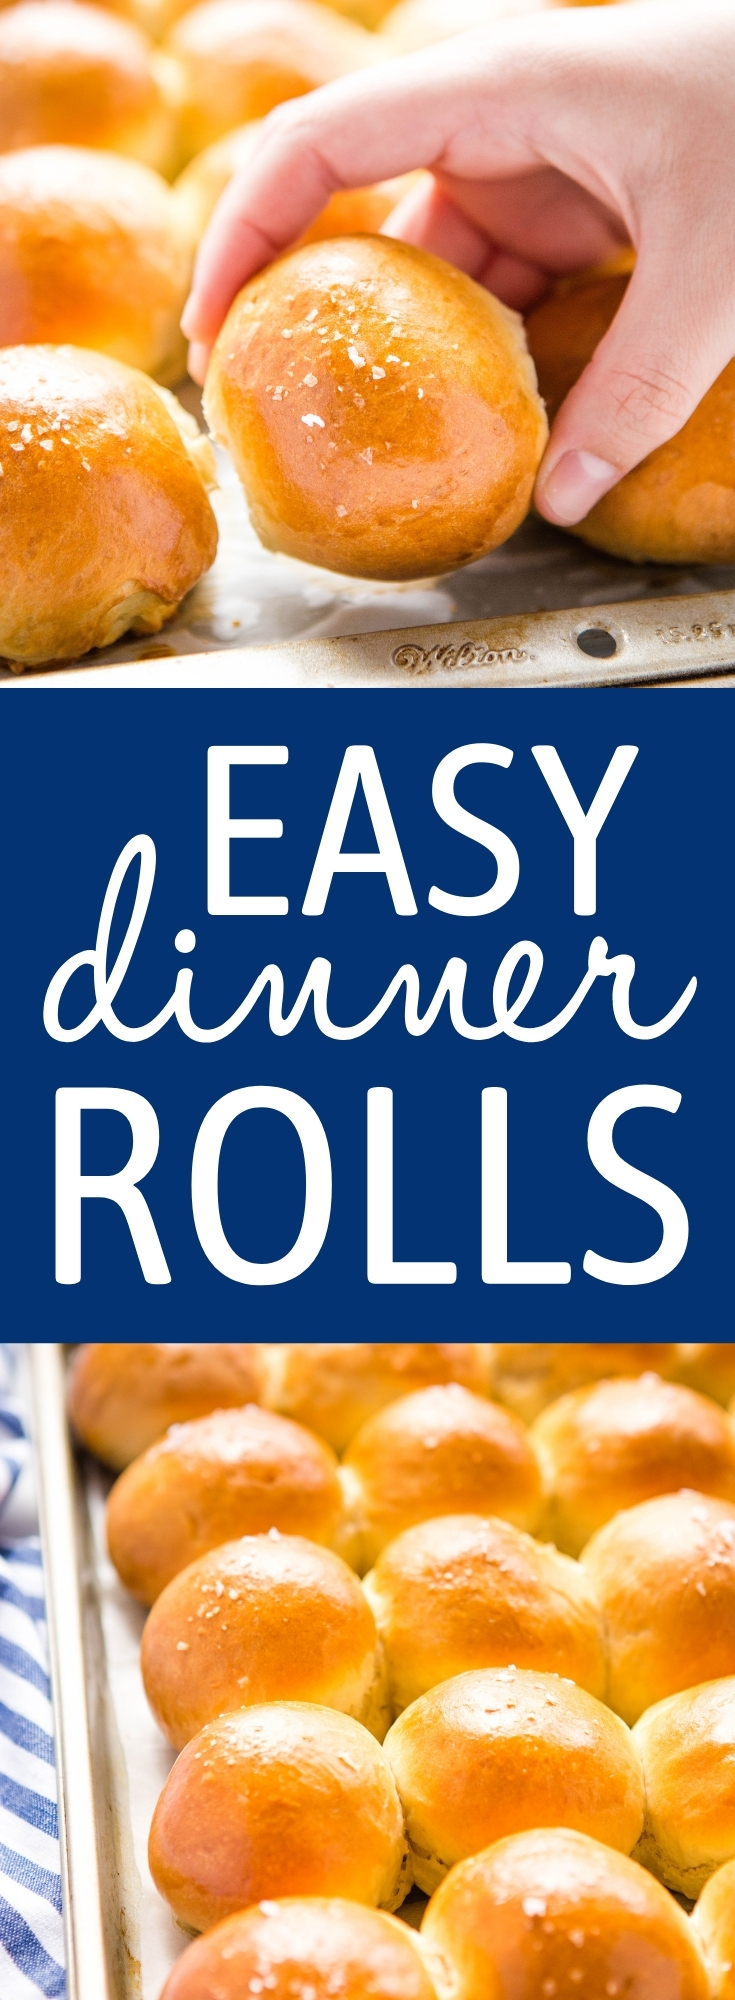 These Homemade Dinner Rolls are the perfect simple yeast rolls to make for all your holiday dinners - with my easy pro tips and tricks for fluffy and delicious dinner rolls every single time! Recipe from thebusybaker.ca! #homemadedinnerrolls #rolls #buns #baking #bread #holiday #sidedish #easydinnerrolls via @busybakerblog